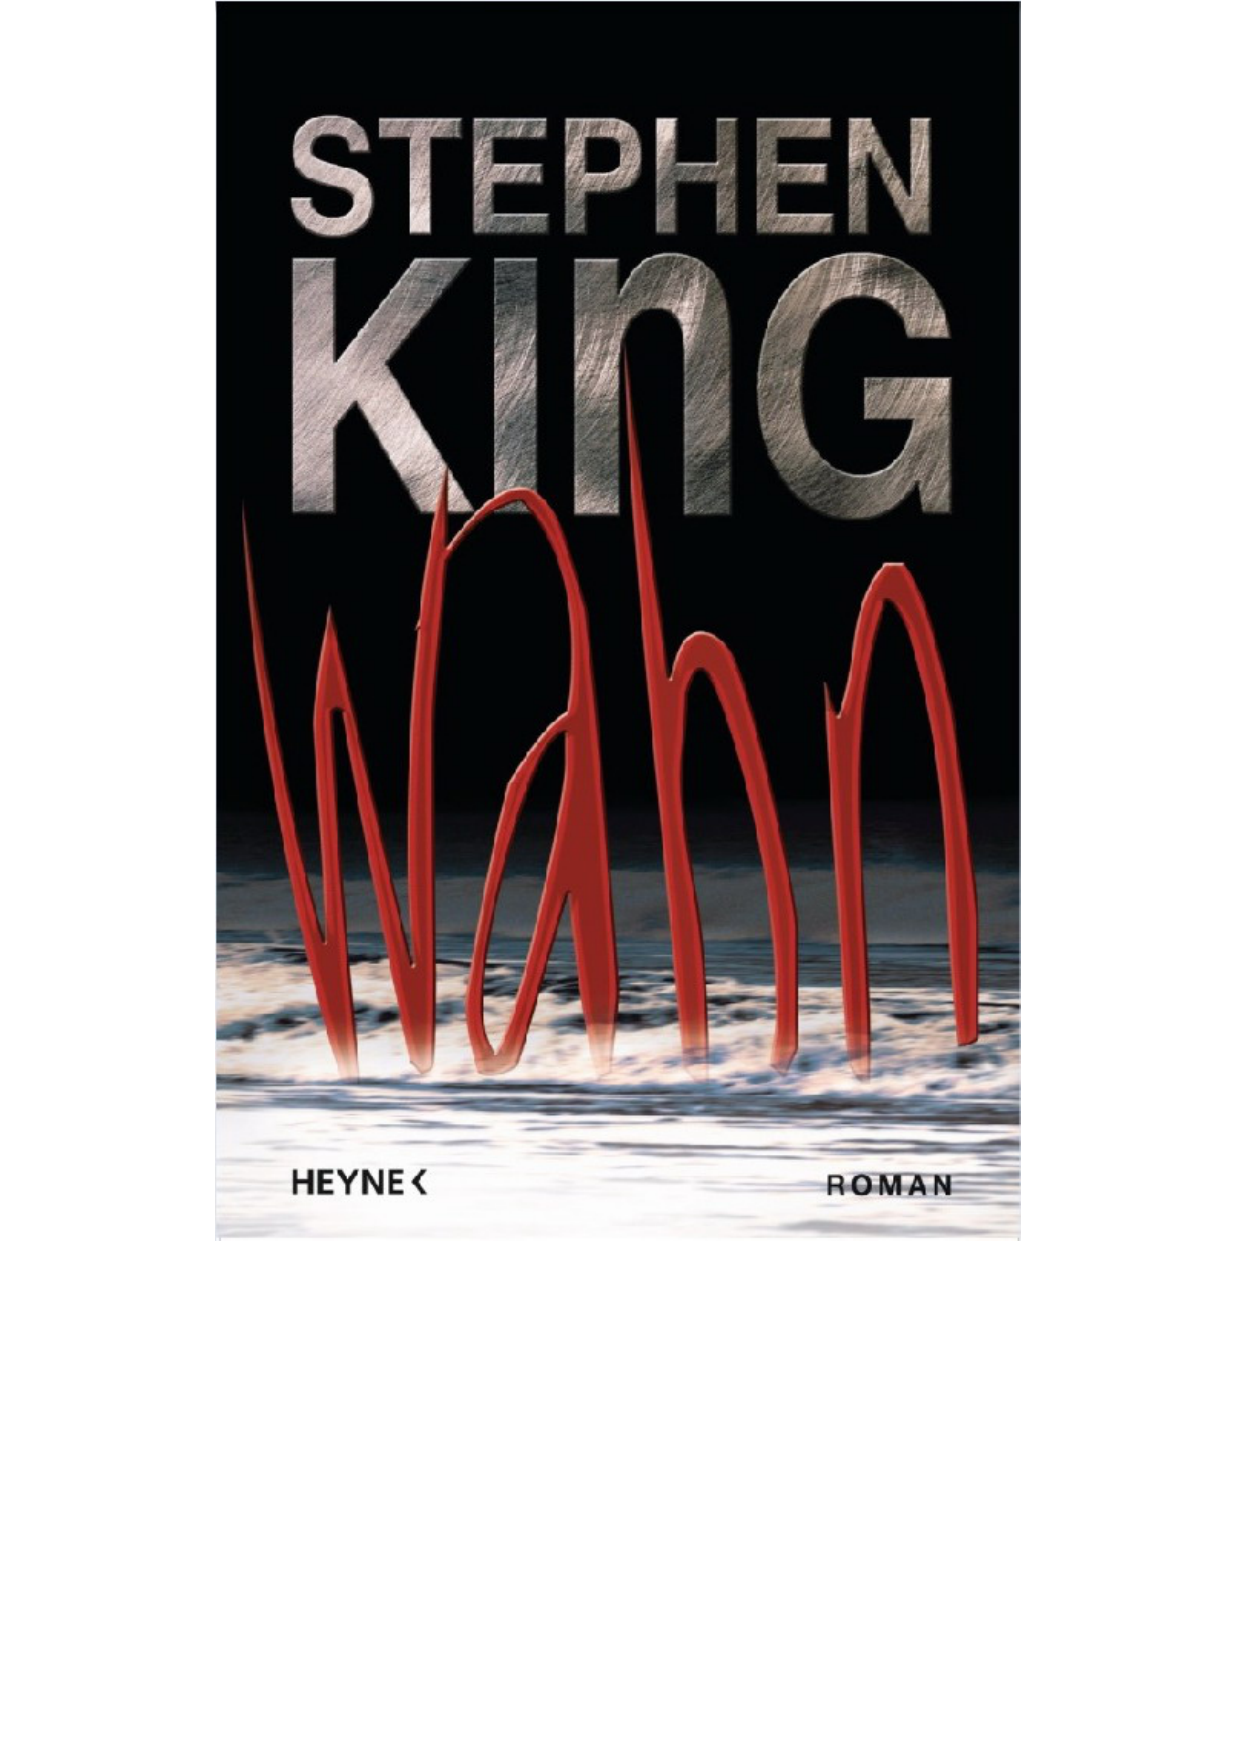 Stephen King - Wahn- Roman